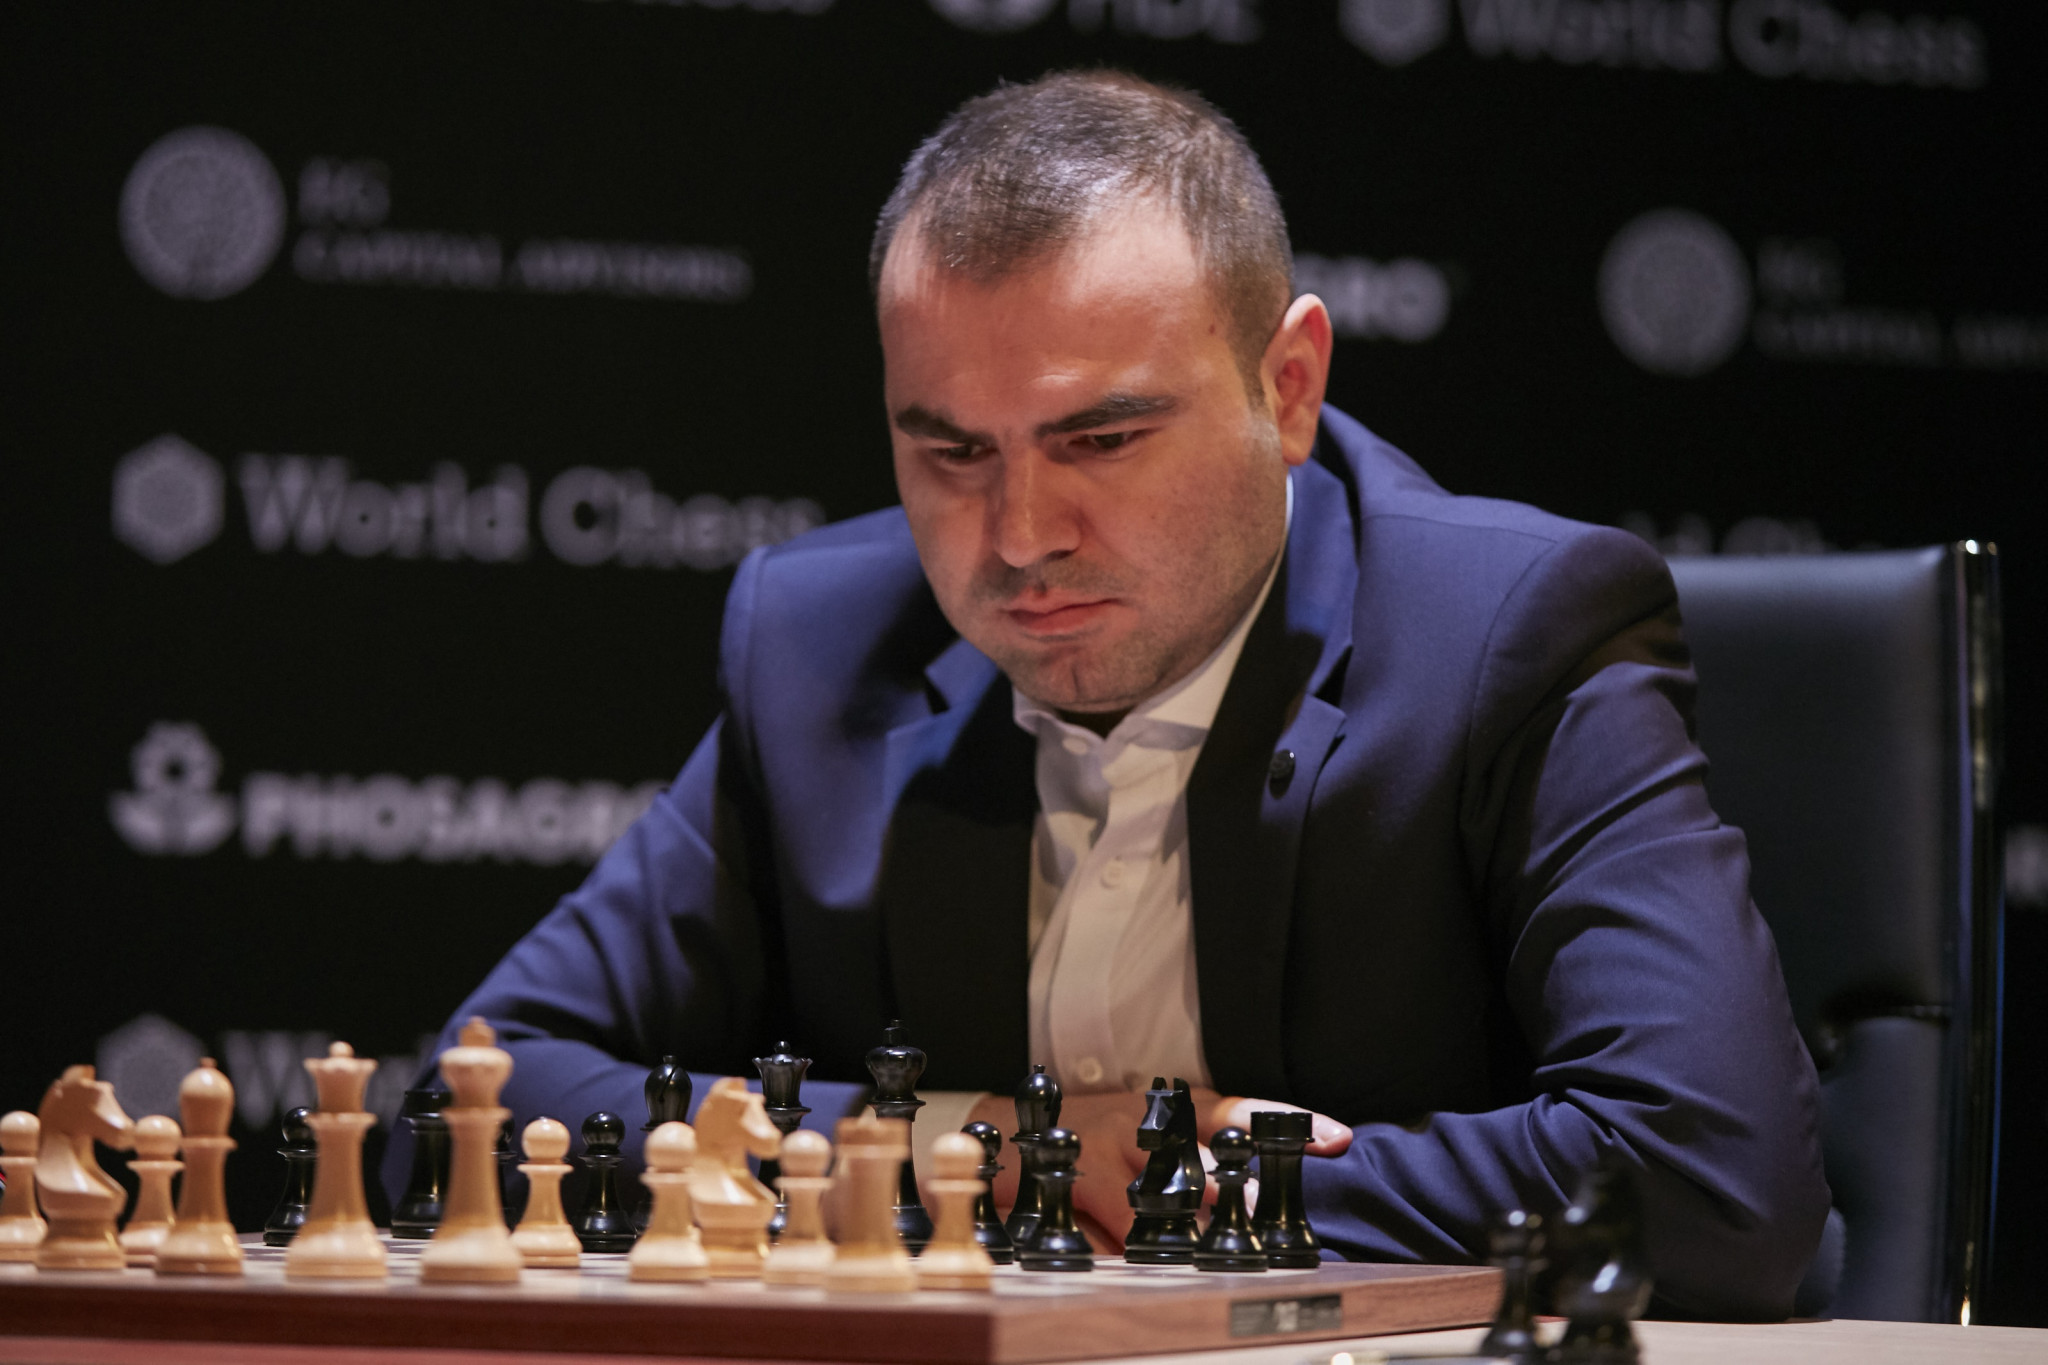 Azerbaijan's Shakhriyar Mamedyarov currently occupies second place in the standings ©Getty Images